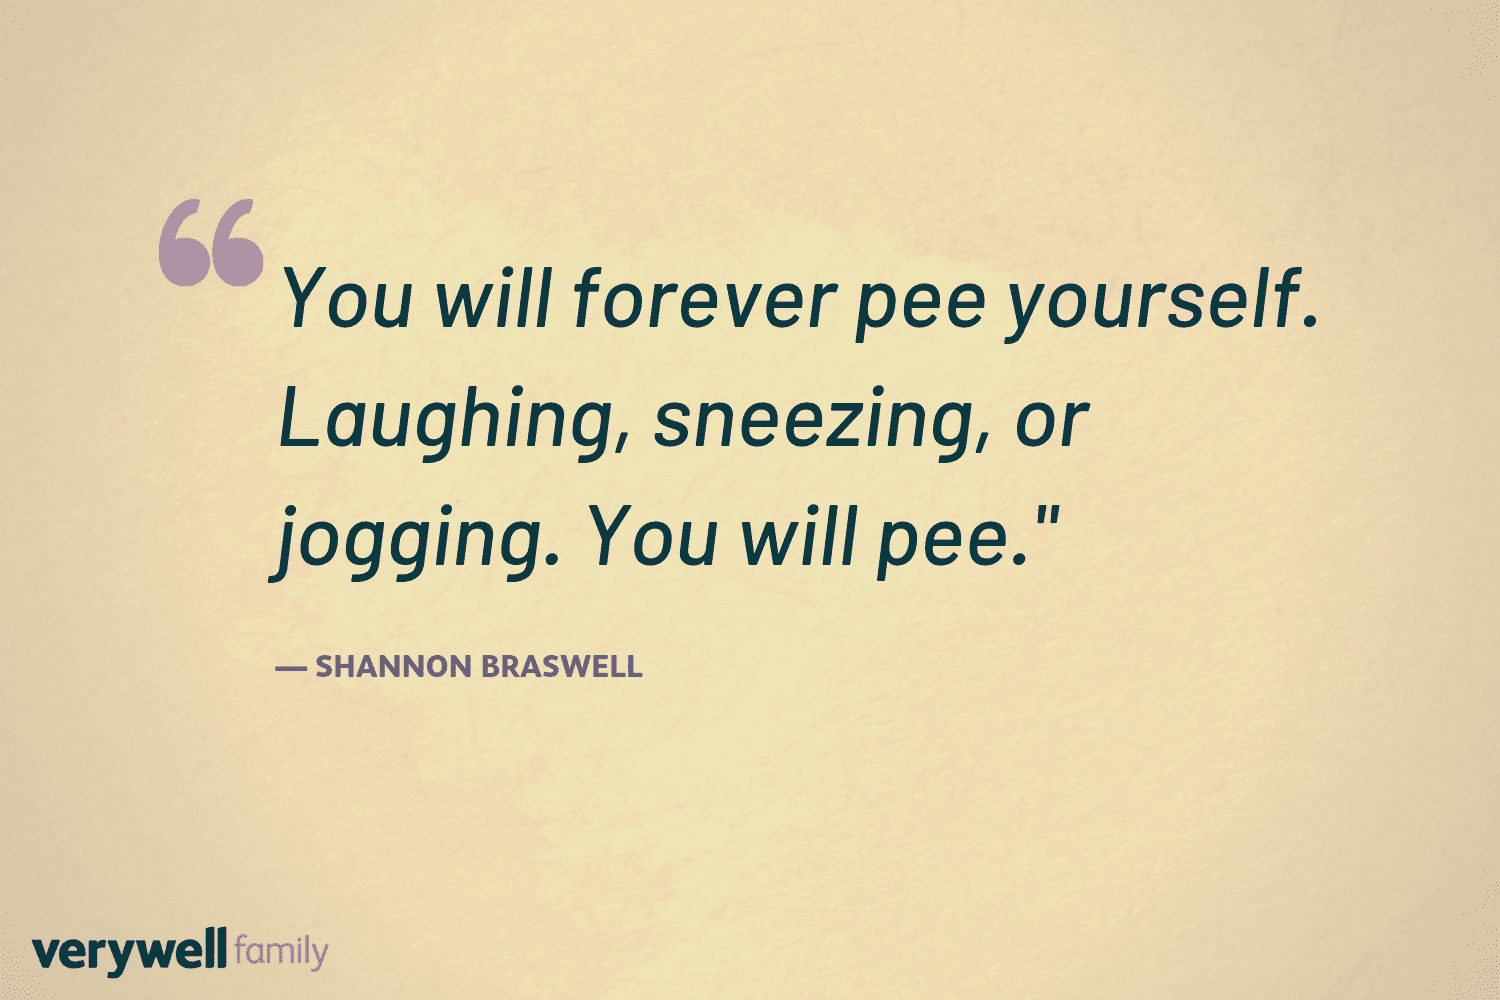 Verywell Family postpartum quote by Shannon Braswell